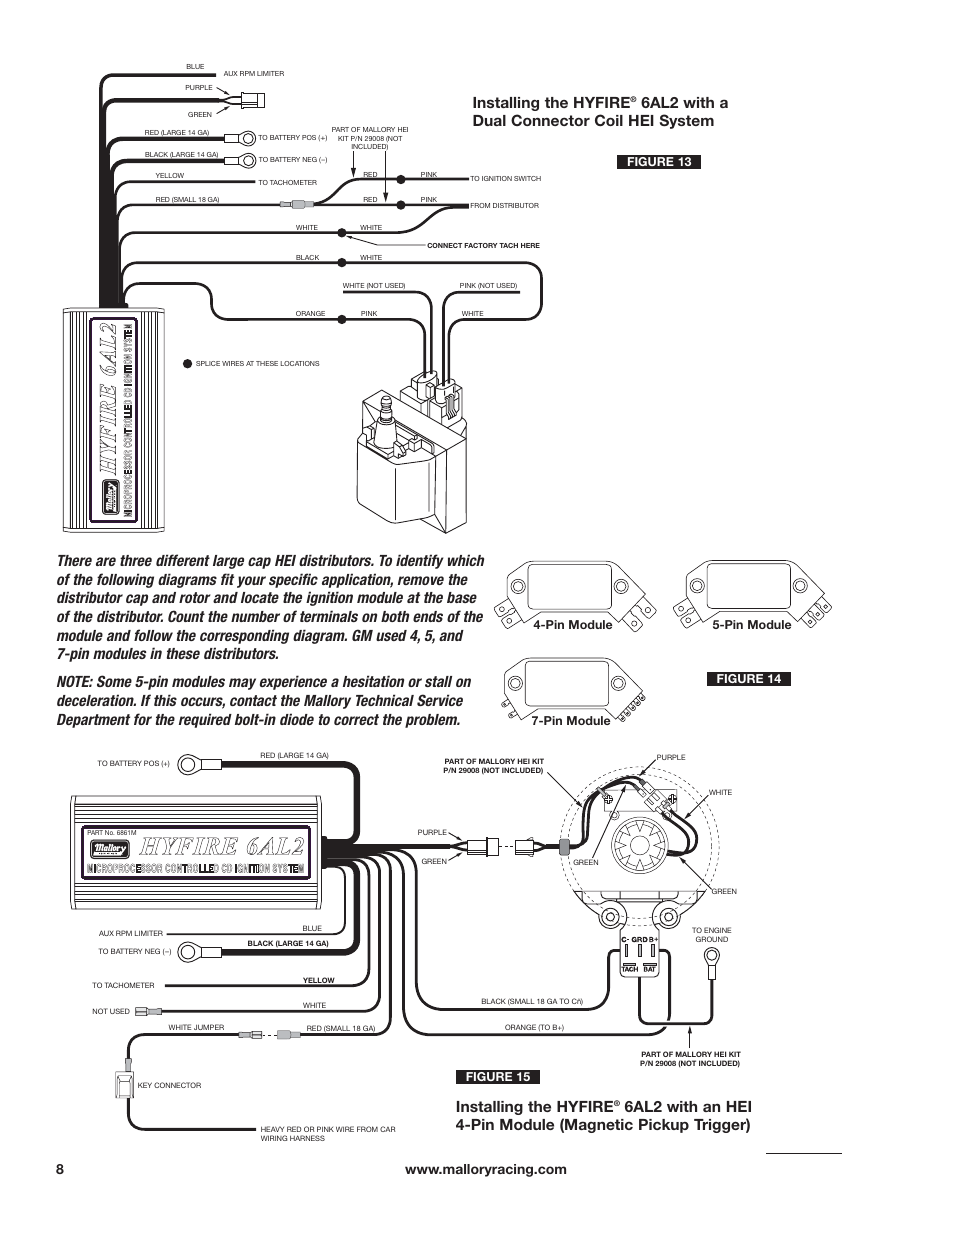 Hhy yf fiir re e 6 6a al l2 2, Hh yy ff iirr ee 66 aa ll 22 ... Mallory Ignition Wiring Diagram Blue Red Orange on atwood rv water heater diagram, inboard outboard motor diagram, mallory carburetor diagram, msd 6al diagram, basic car electrical system diagram, electronic ignition diagram, mallory dist wiring-diagram, omc ignition switch diagram, mallory high fire wiring-diagram, fairbanks morse magneto diagram,